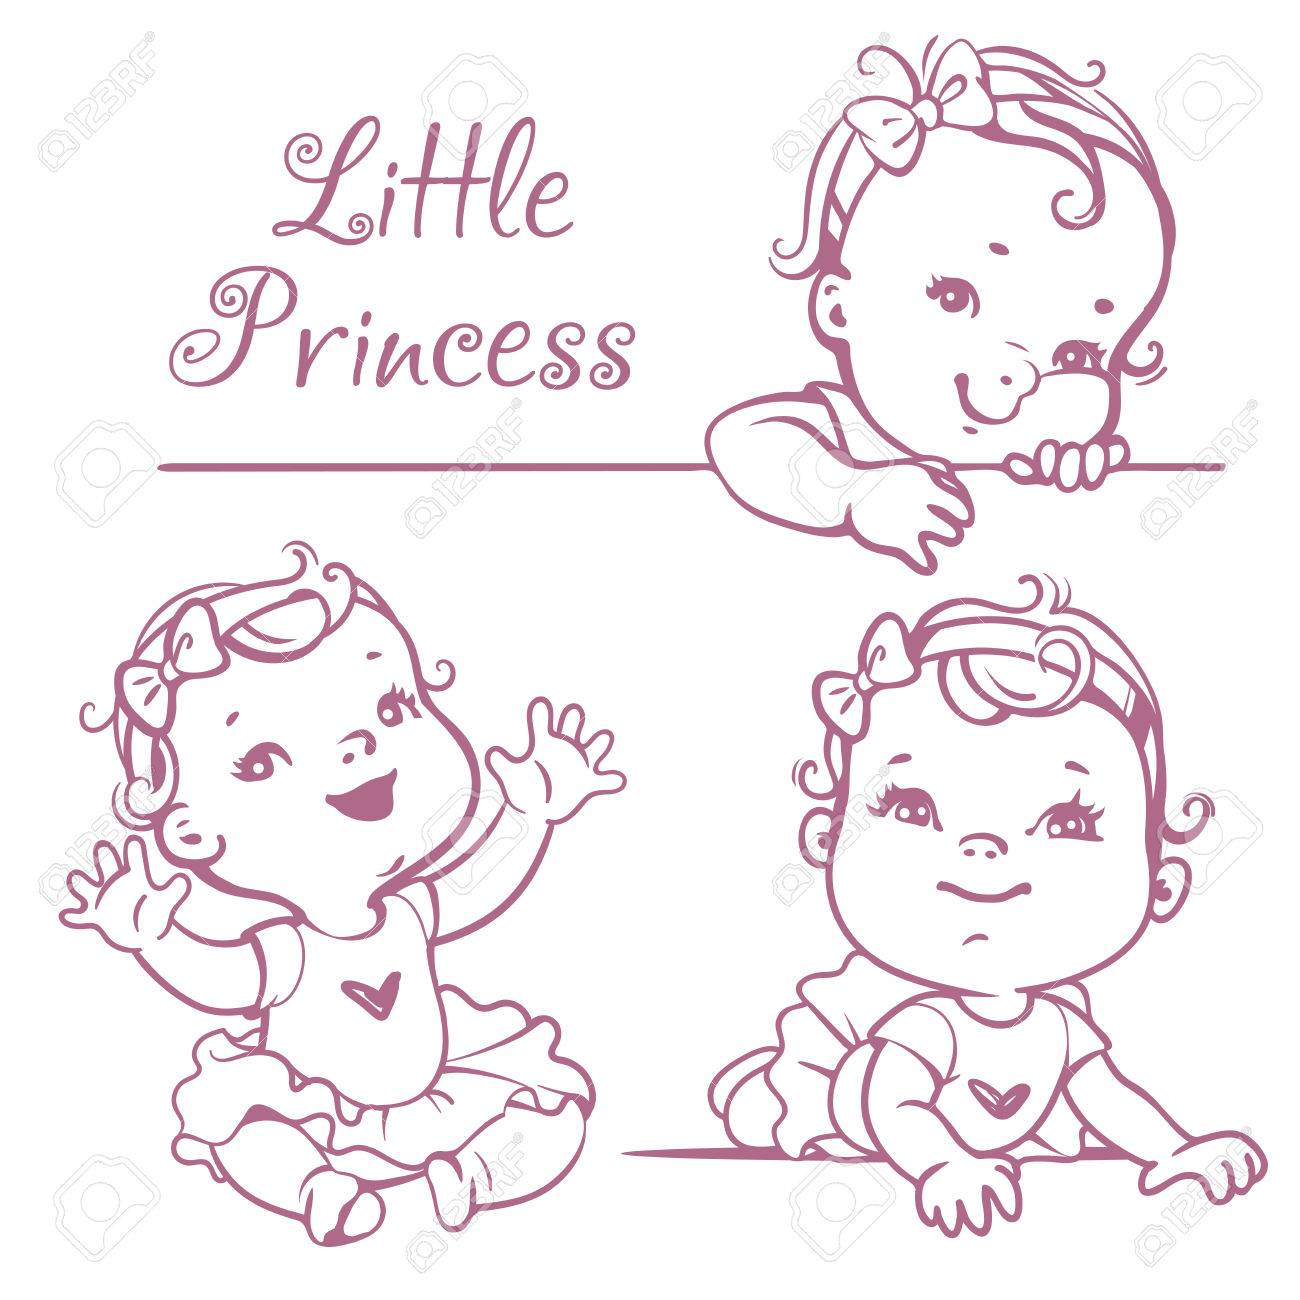 Set with cute little baby girl with curly hair, wearing bow, pink tutu. Portrait of happy smiling child one year old. Little princess sitting, lying, smiling. Monochrome sketchy vector illustration. - 58943546